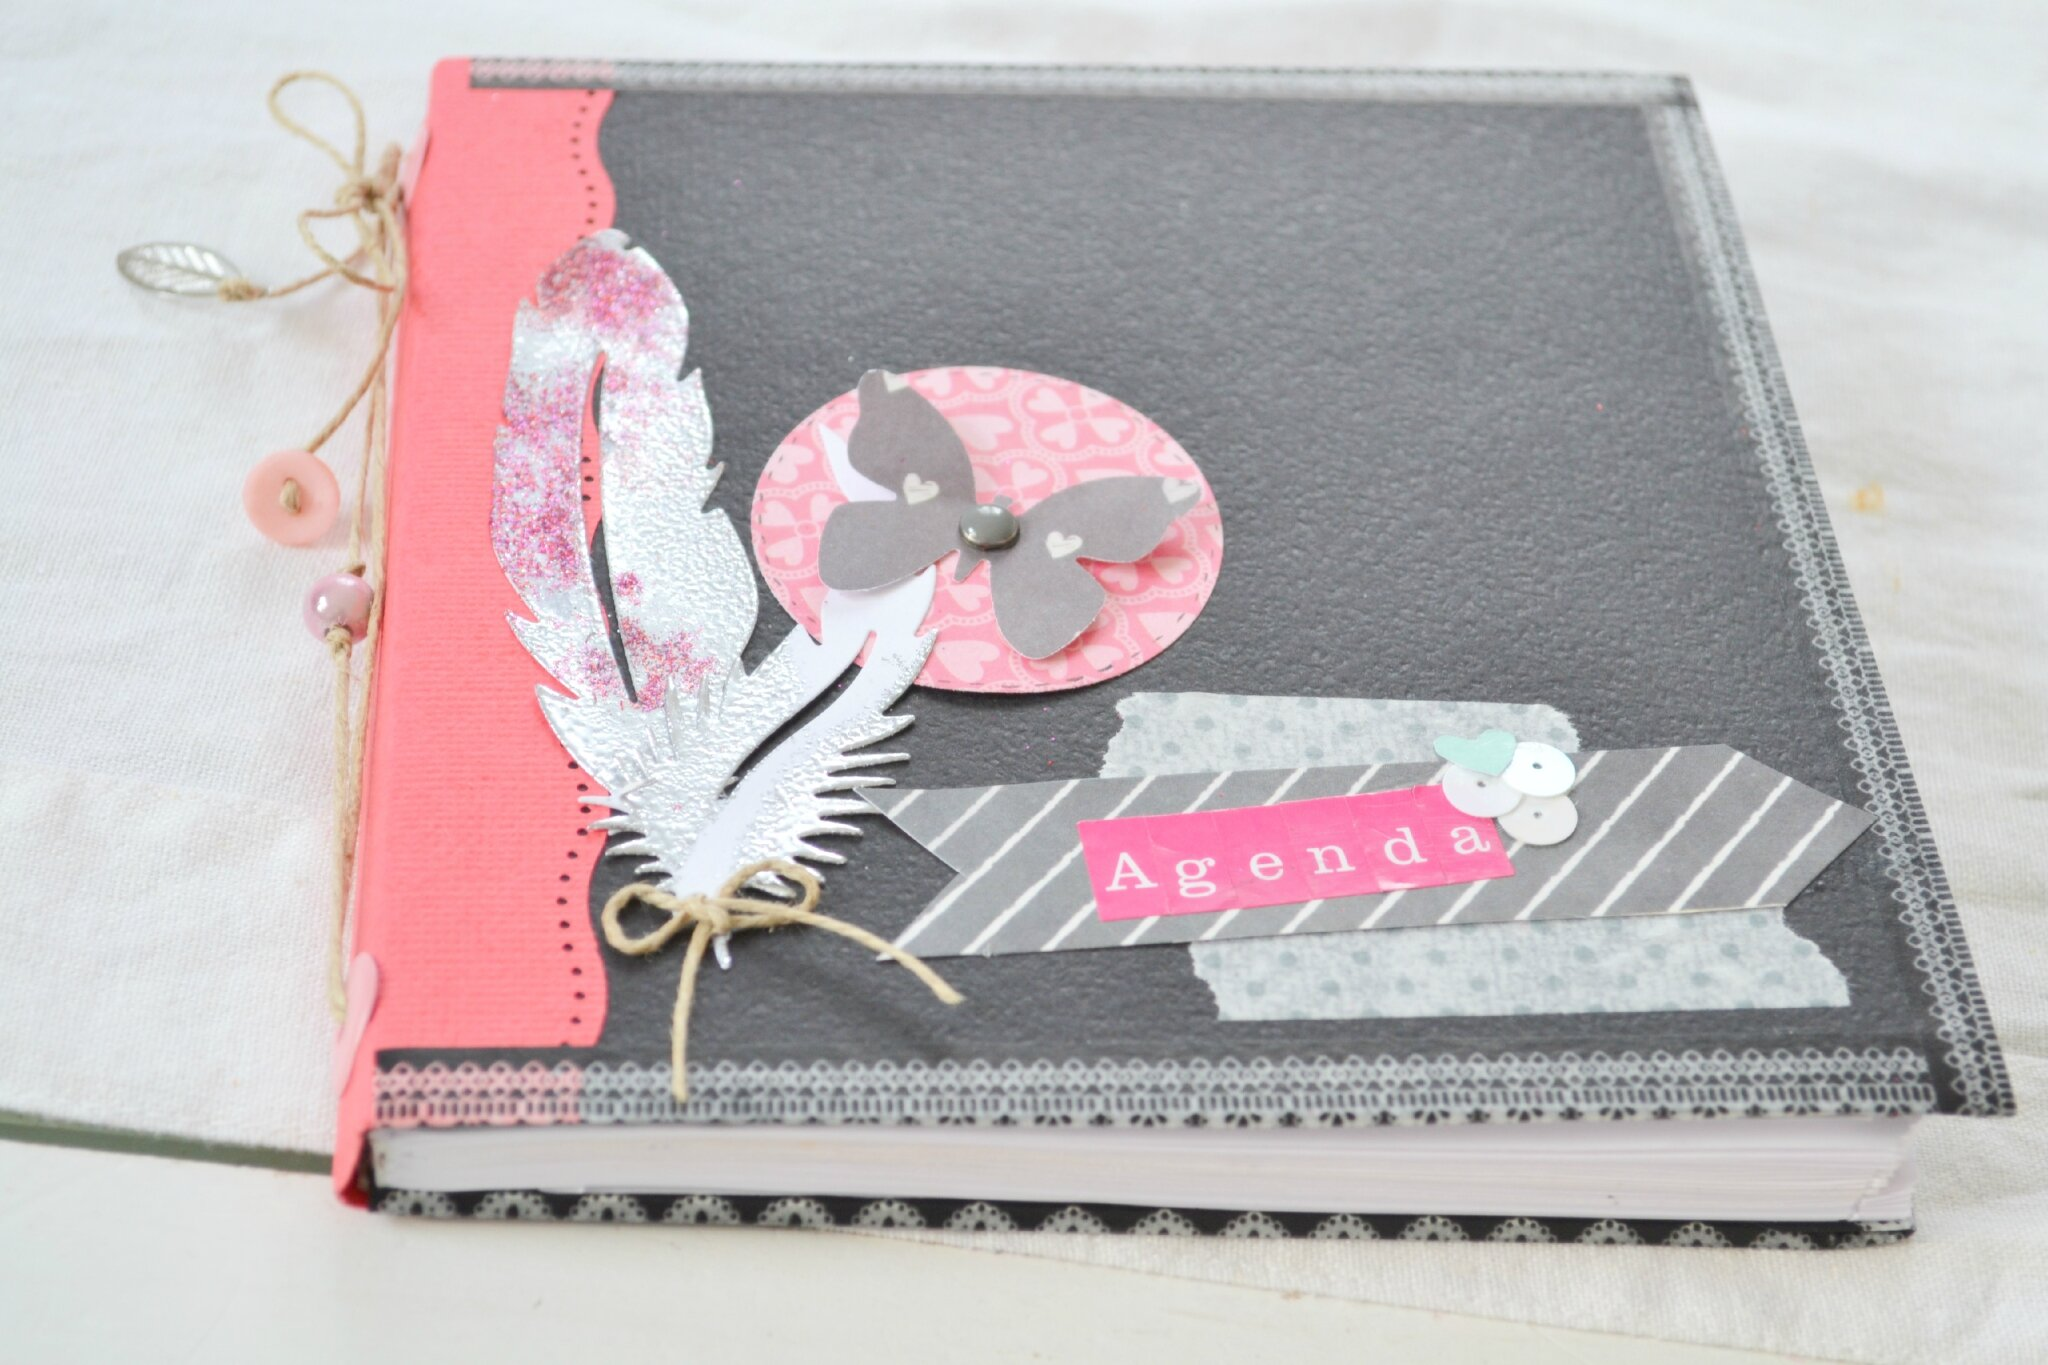 Fabuleux Customiser Un Agenda - Fashion Designs KF84